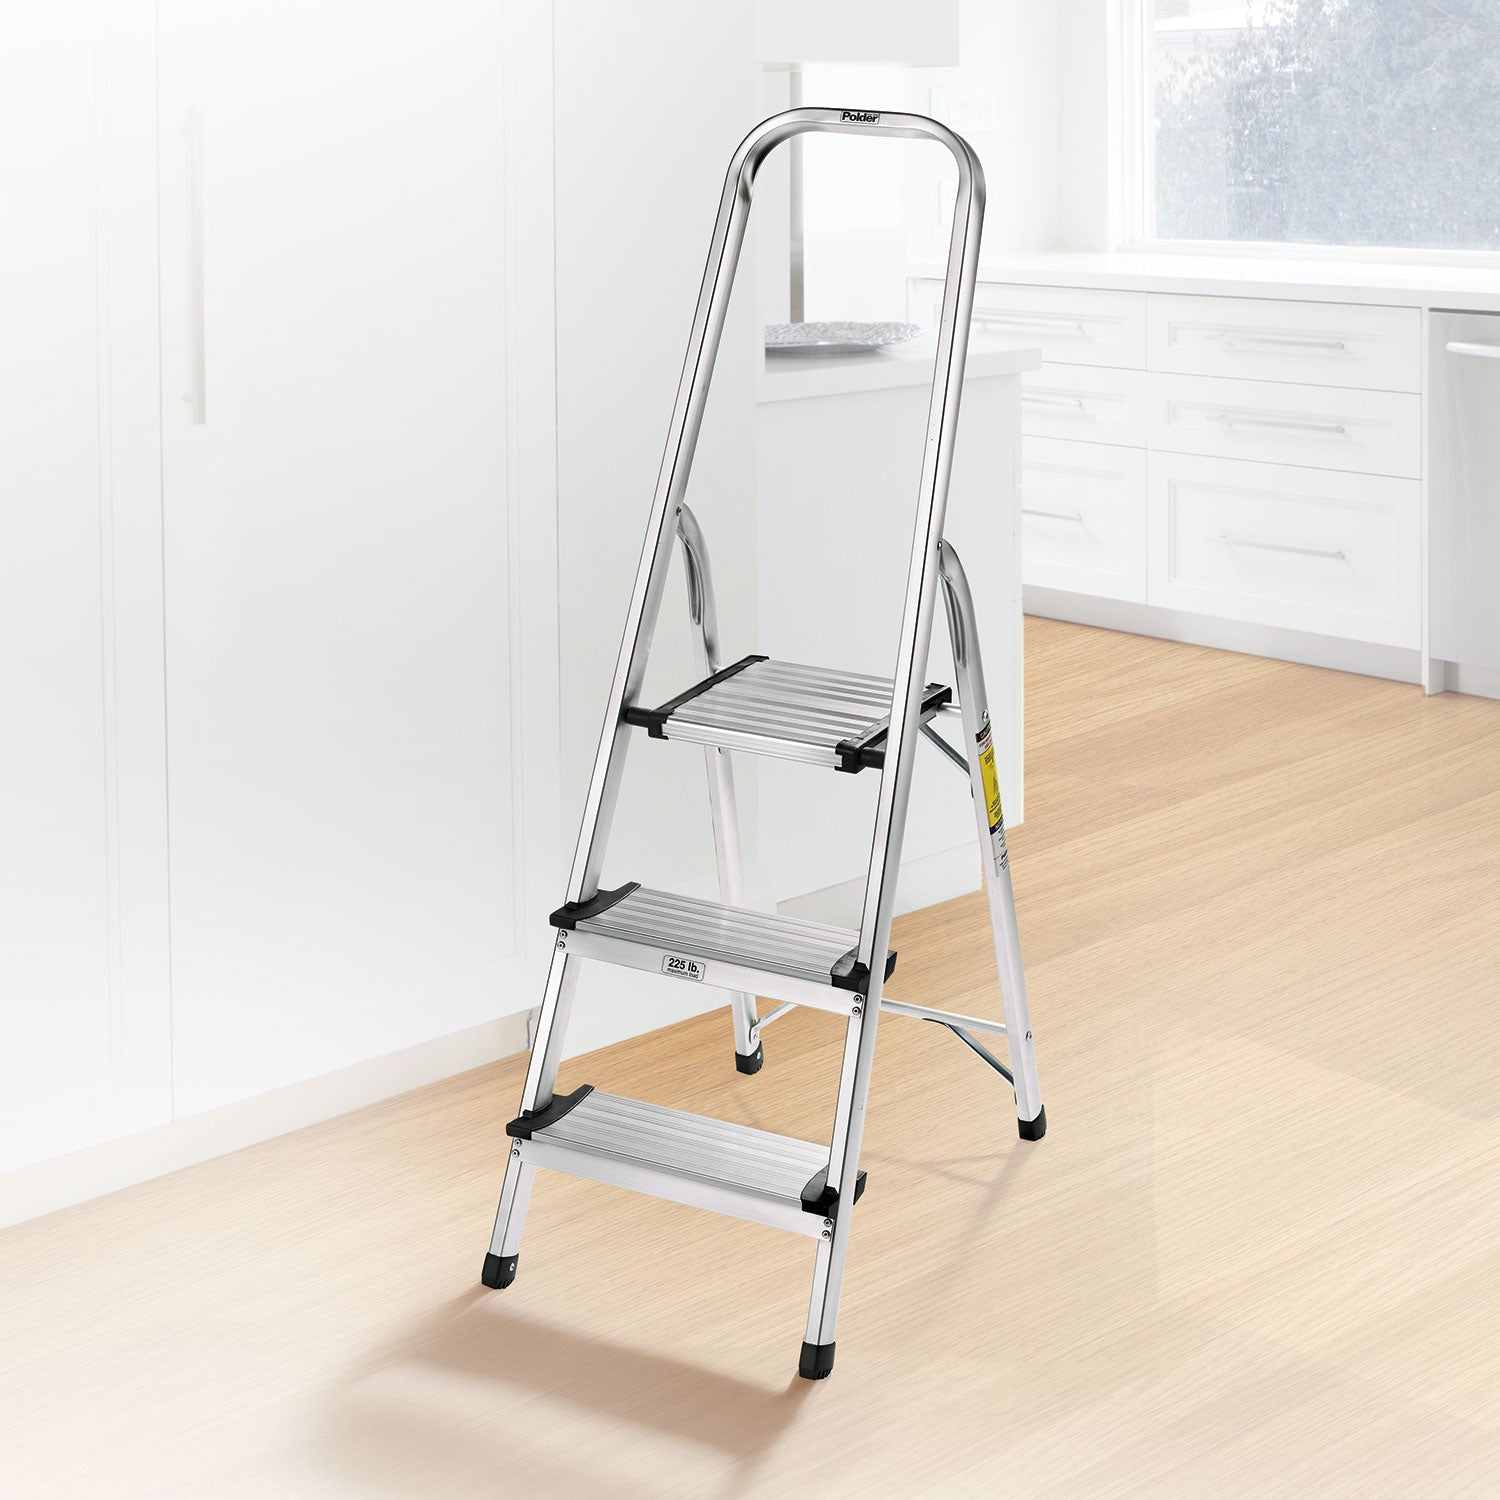 Phenomenal 3 Step Ultralight Step Stool Polder Products Life Style Cjindustries Chair Design For Home Cjindustriesco